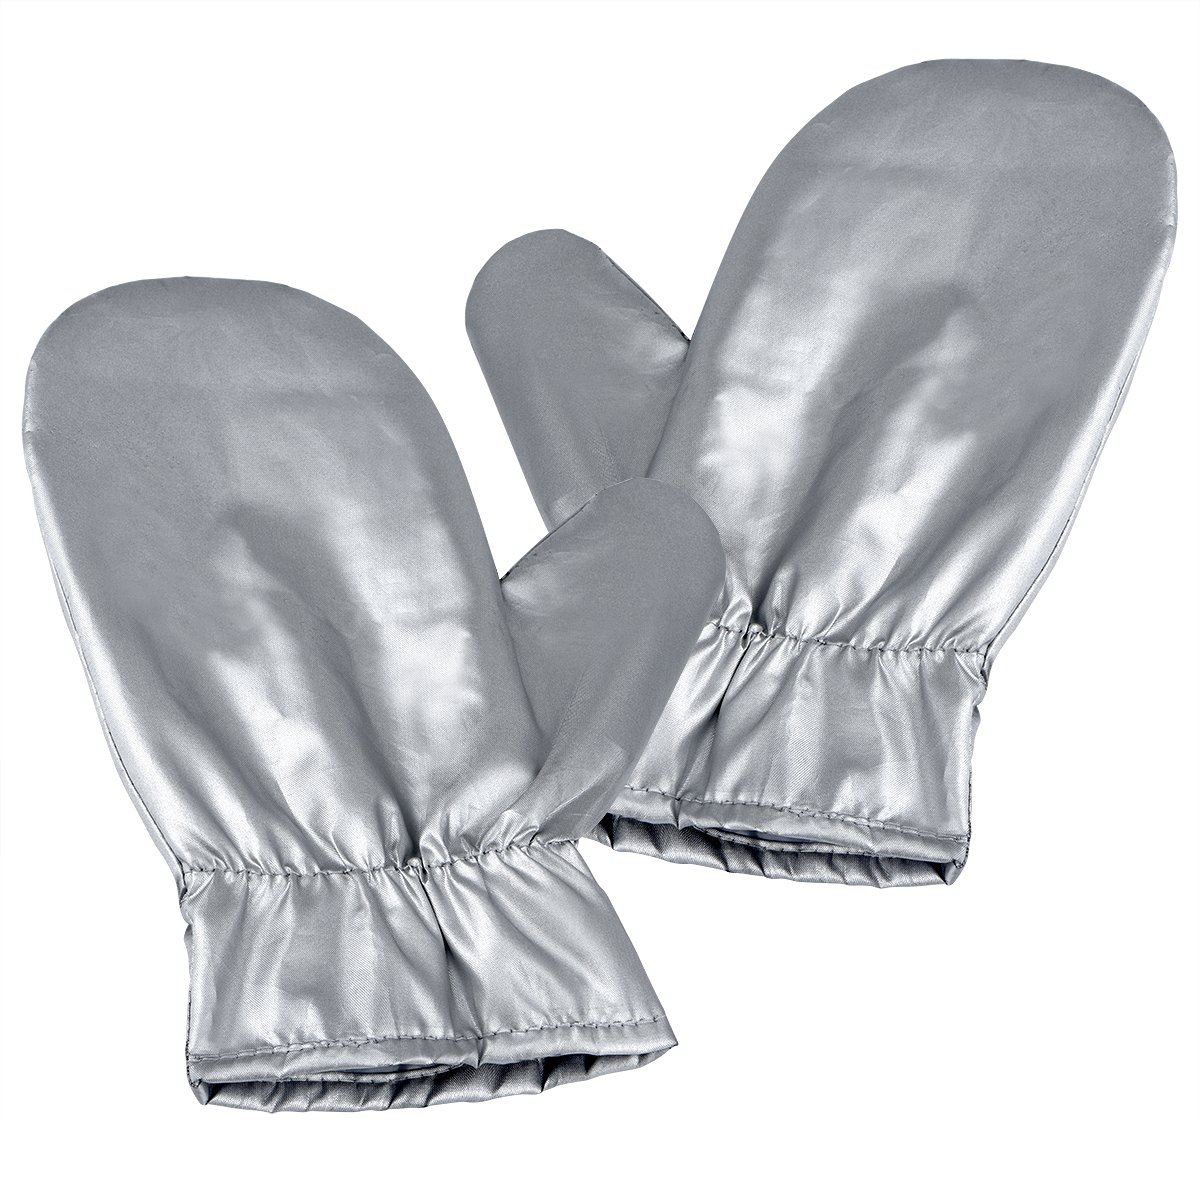 Upgraded Garment Steamer Ironing Gloves Mitt Tingtio Anti Steam Gloves Durable Heat Resistant Waterproof Protective Ironing Glove for Garment Steamer Silver-1 Pair